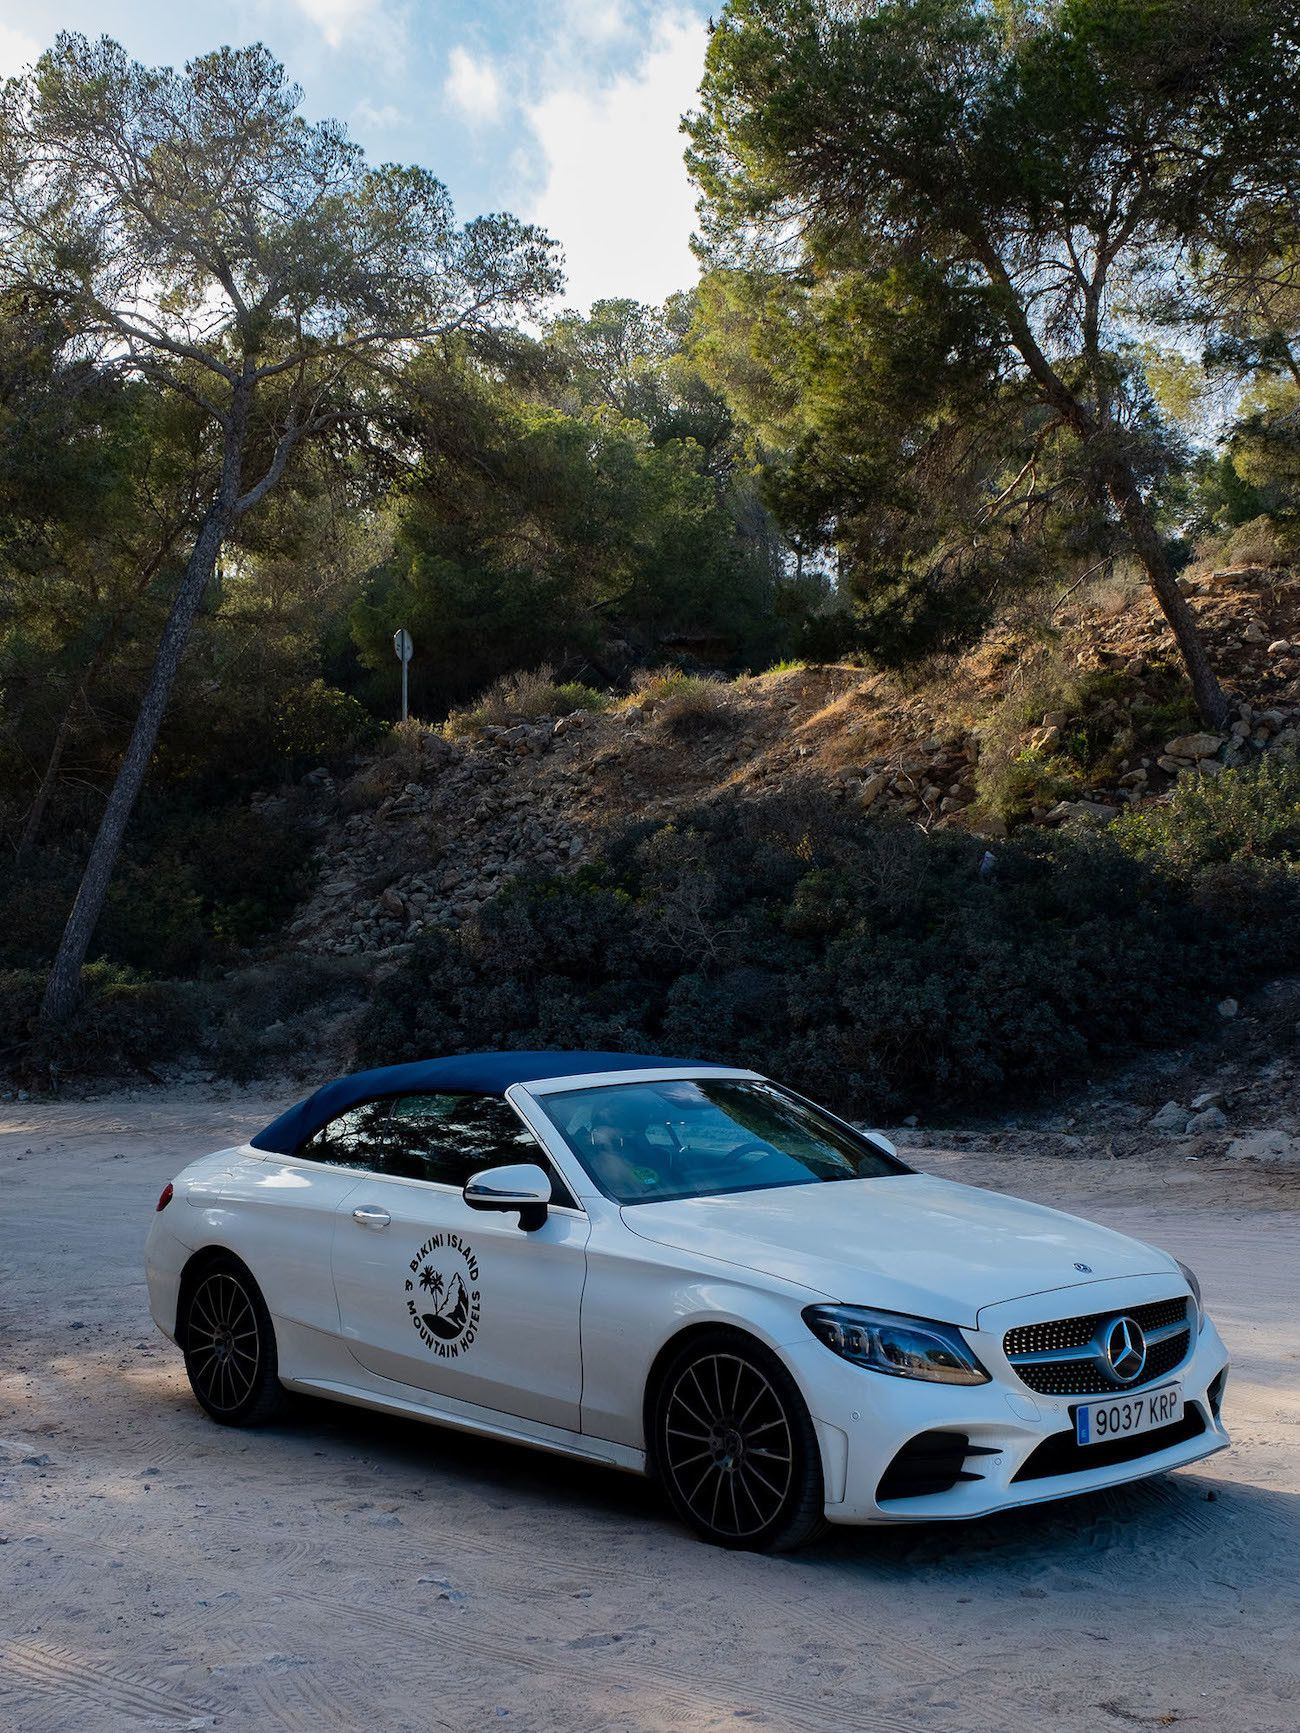 Foodblog About Fuel, Bikini Island & Mountain Hotels, Mercedes AMG